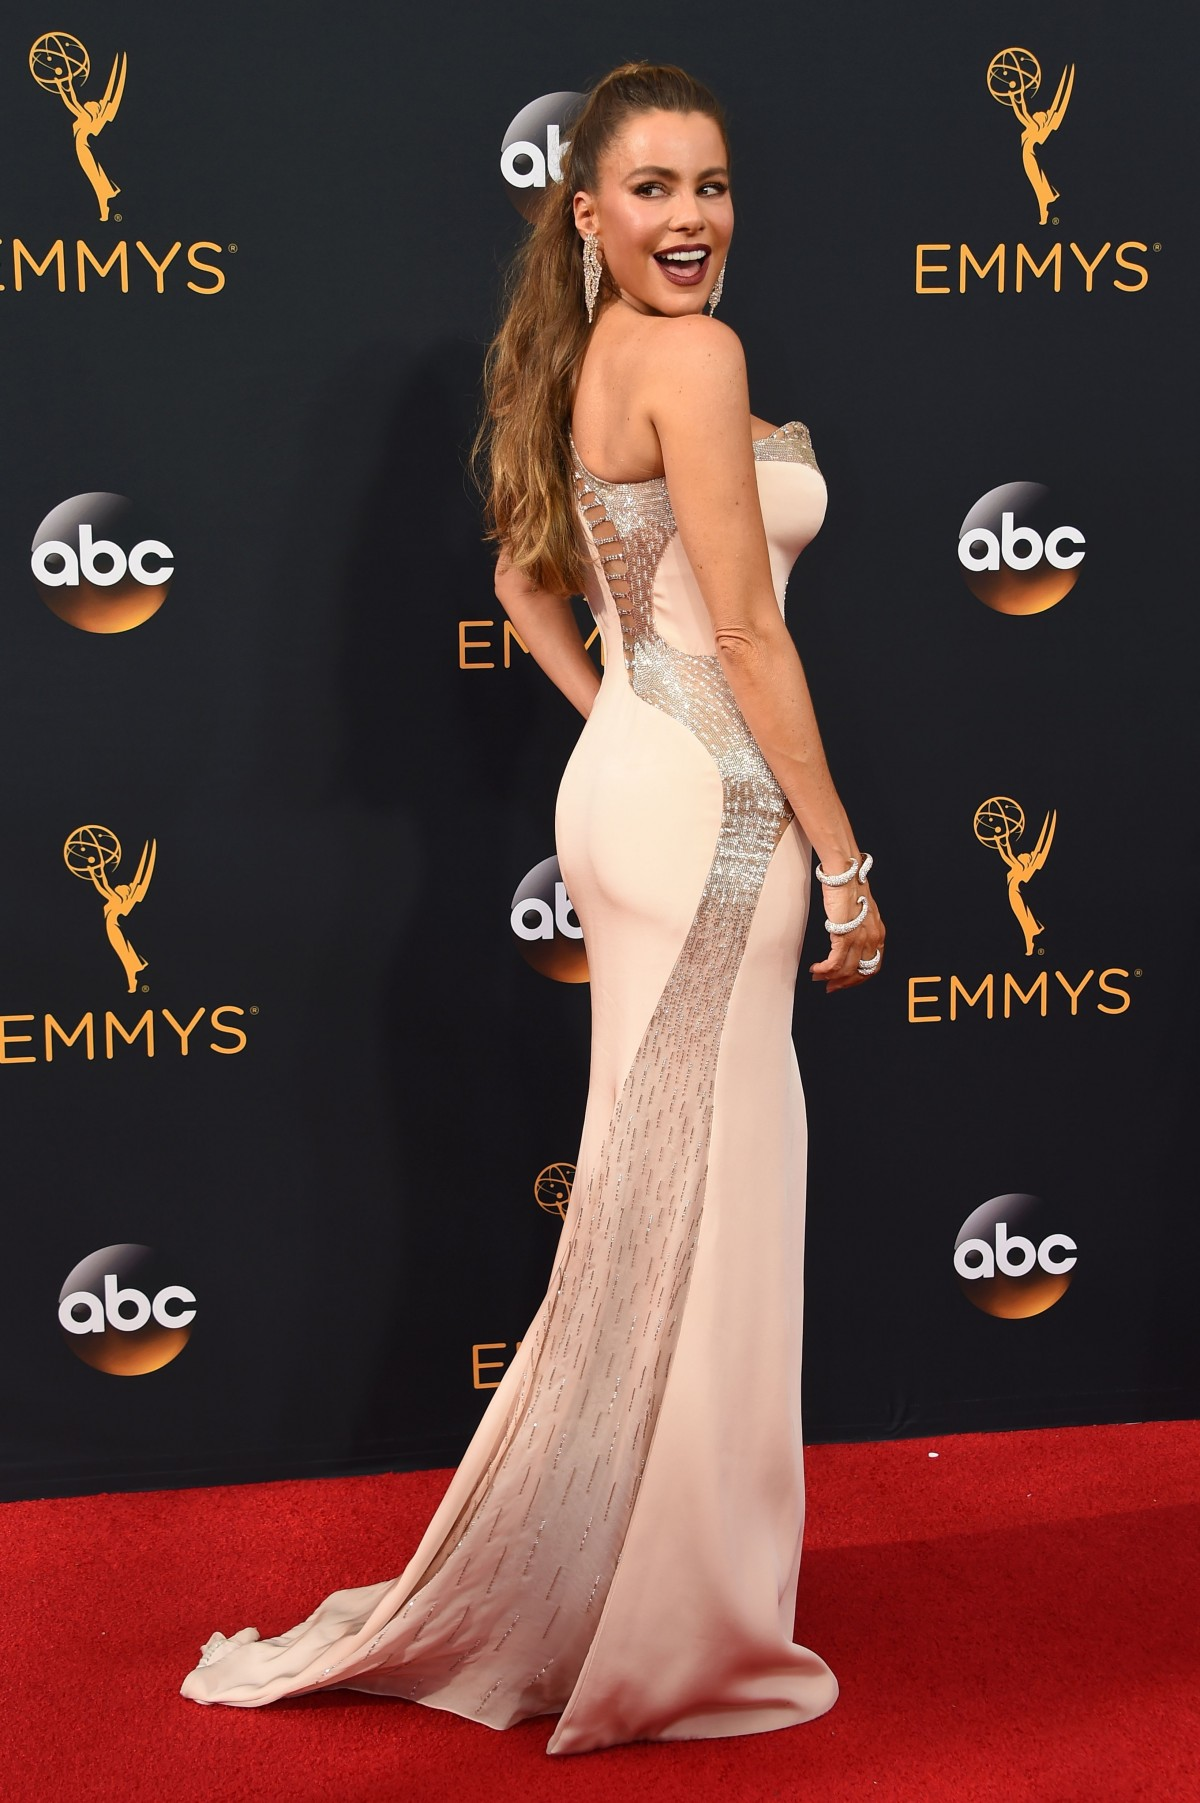 GettyImages-607624958-1200x1803.jpg